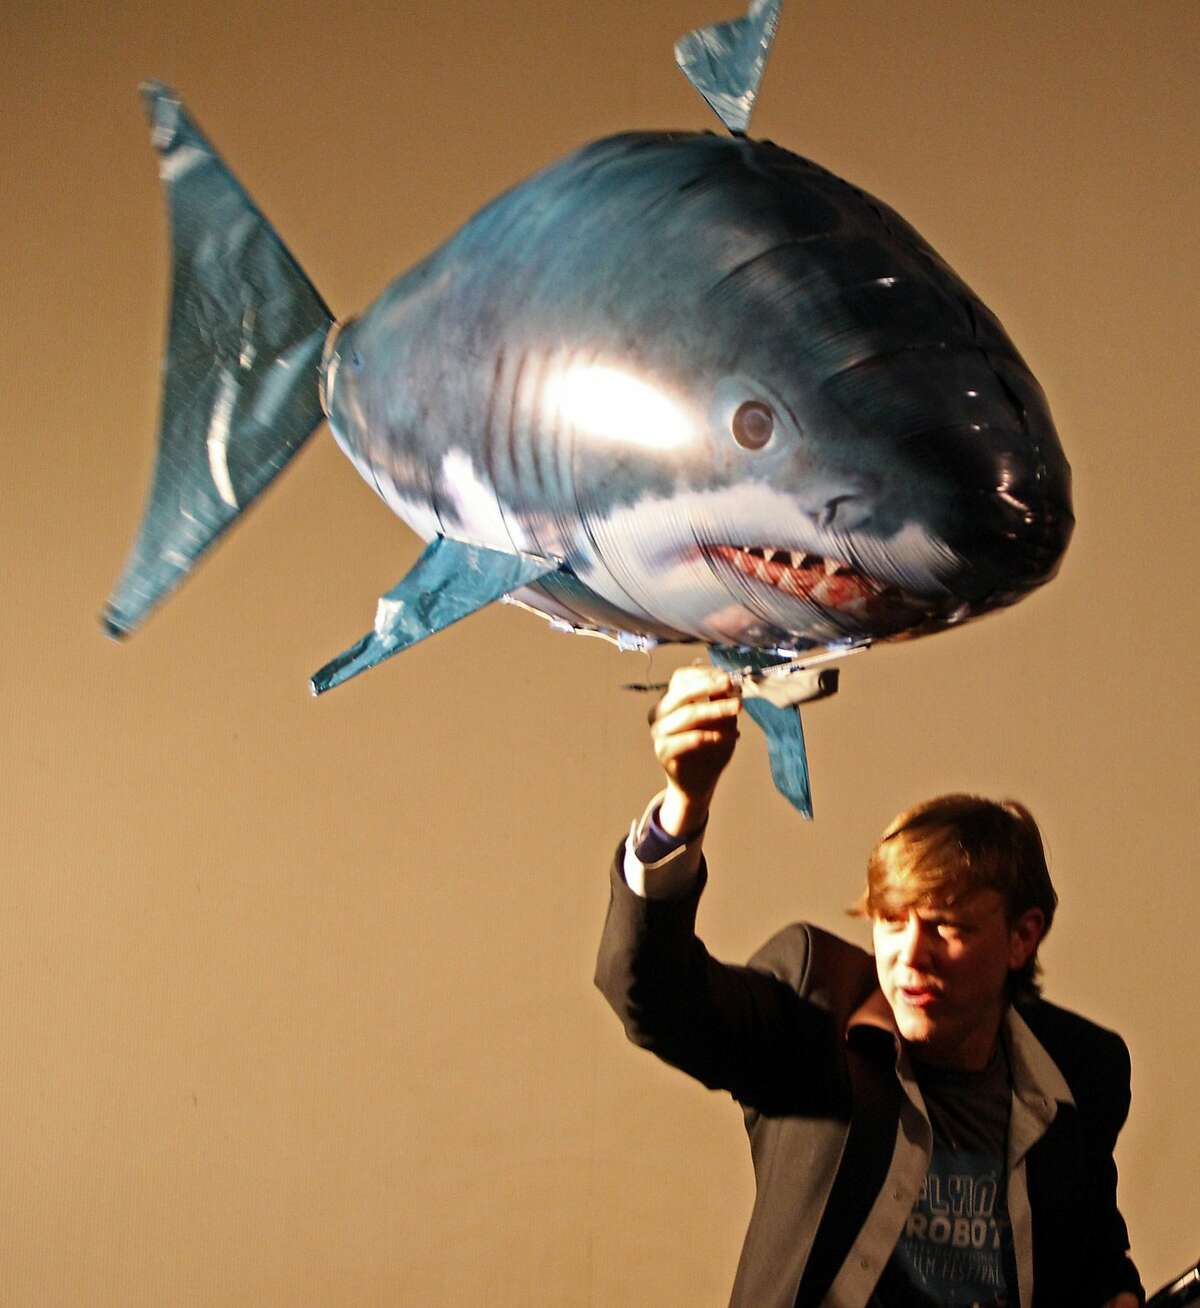 Master of ceremony Justin Hall and the flying shark during the awards ceremony at the1st annual Flying Robot International Film Festival at the Roxie Theater on November 19, 2015.